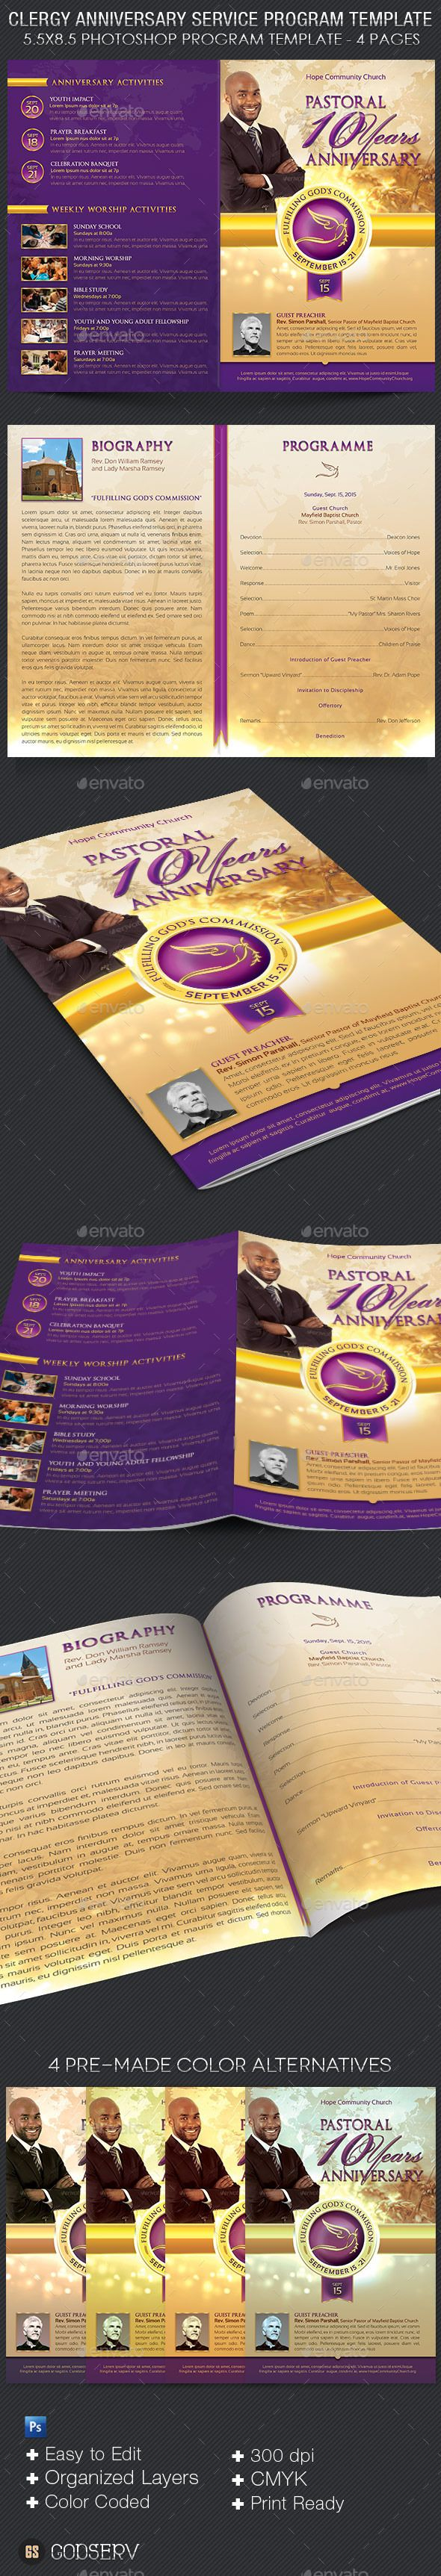 Clergy Anniversary Service Program Template - Informational Brochures